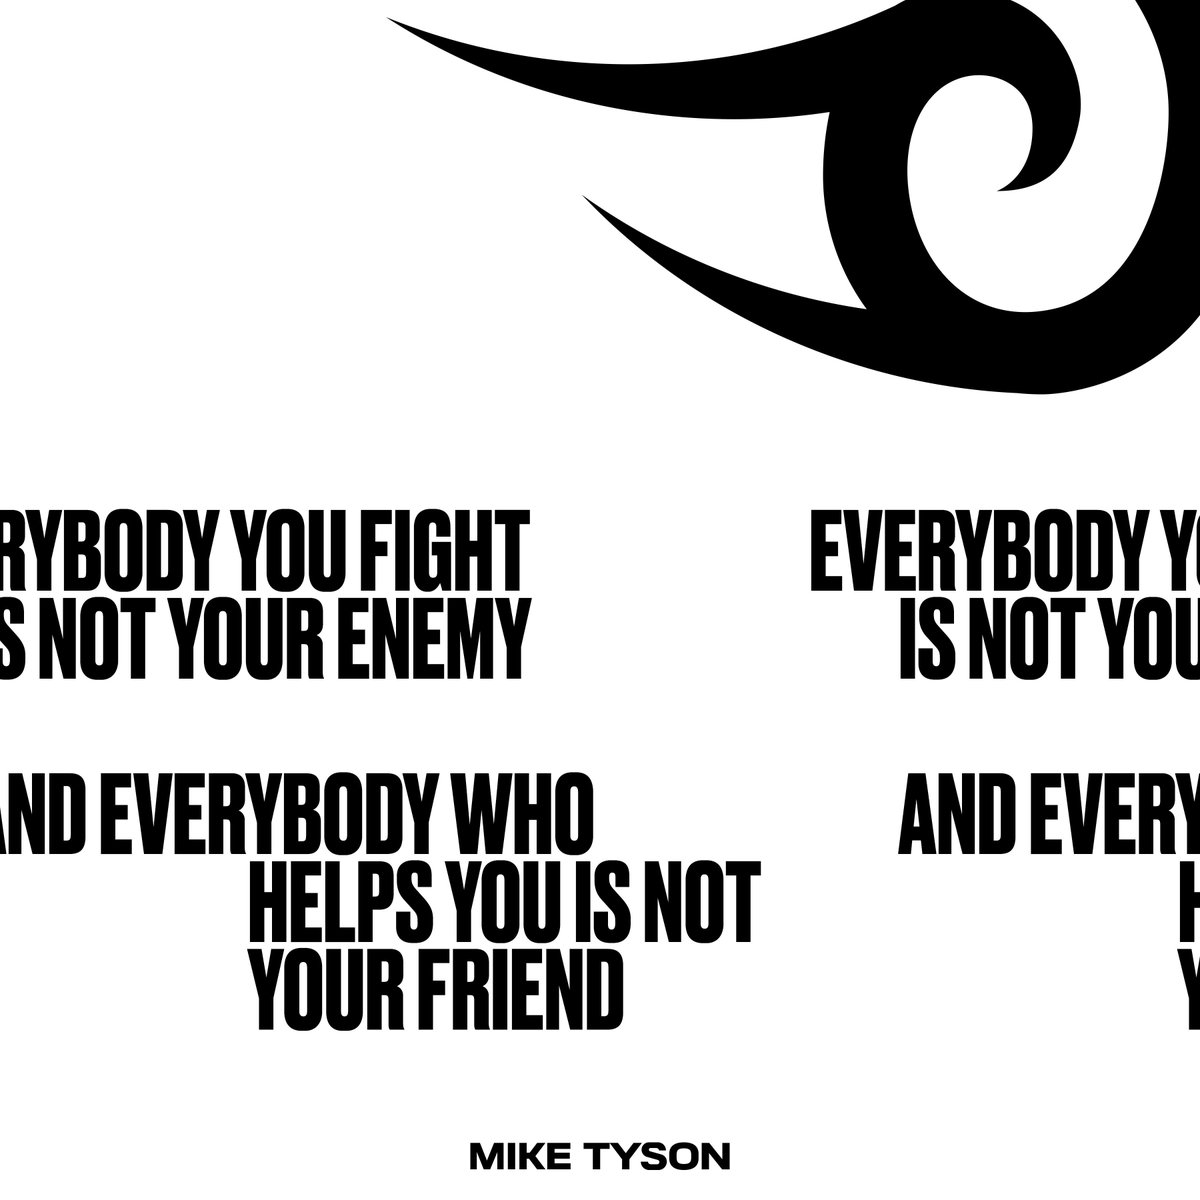 Everybody you fight is not your enemy. And everybody who helps you is not your friend. #miketyson https://t.co/8Lkqv2ZQuO